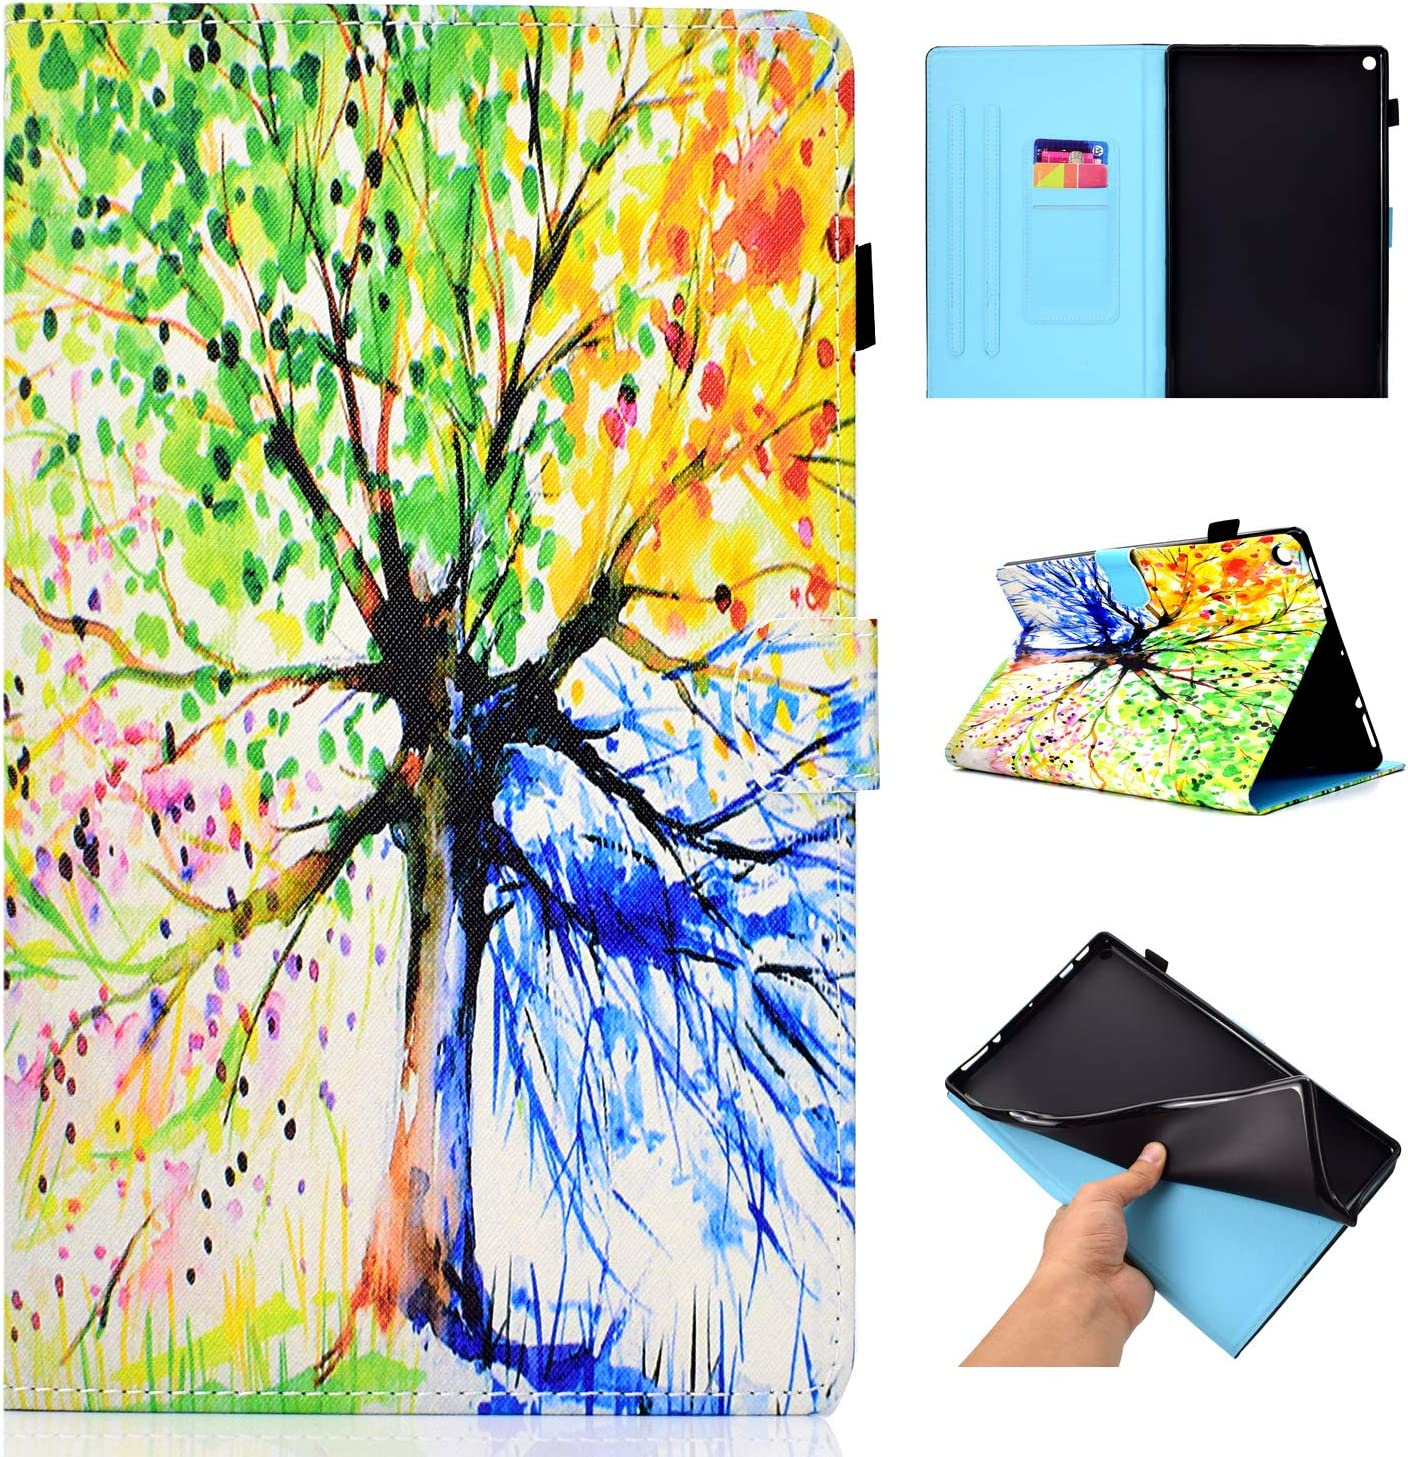 MoreChioce Cover for  Fire HD 10 2015//2017 3D Fashion Watercolor Owl Pattern Soft PU Leather Stand Magnetic Flip Case Folio Closure Foldable Case for  Kindle Fire HD 10 2015//2017